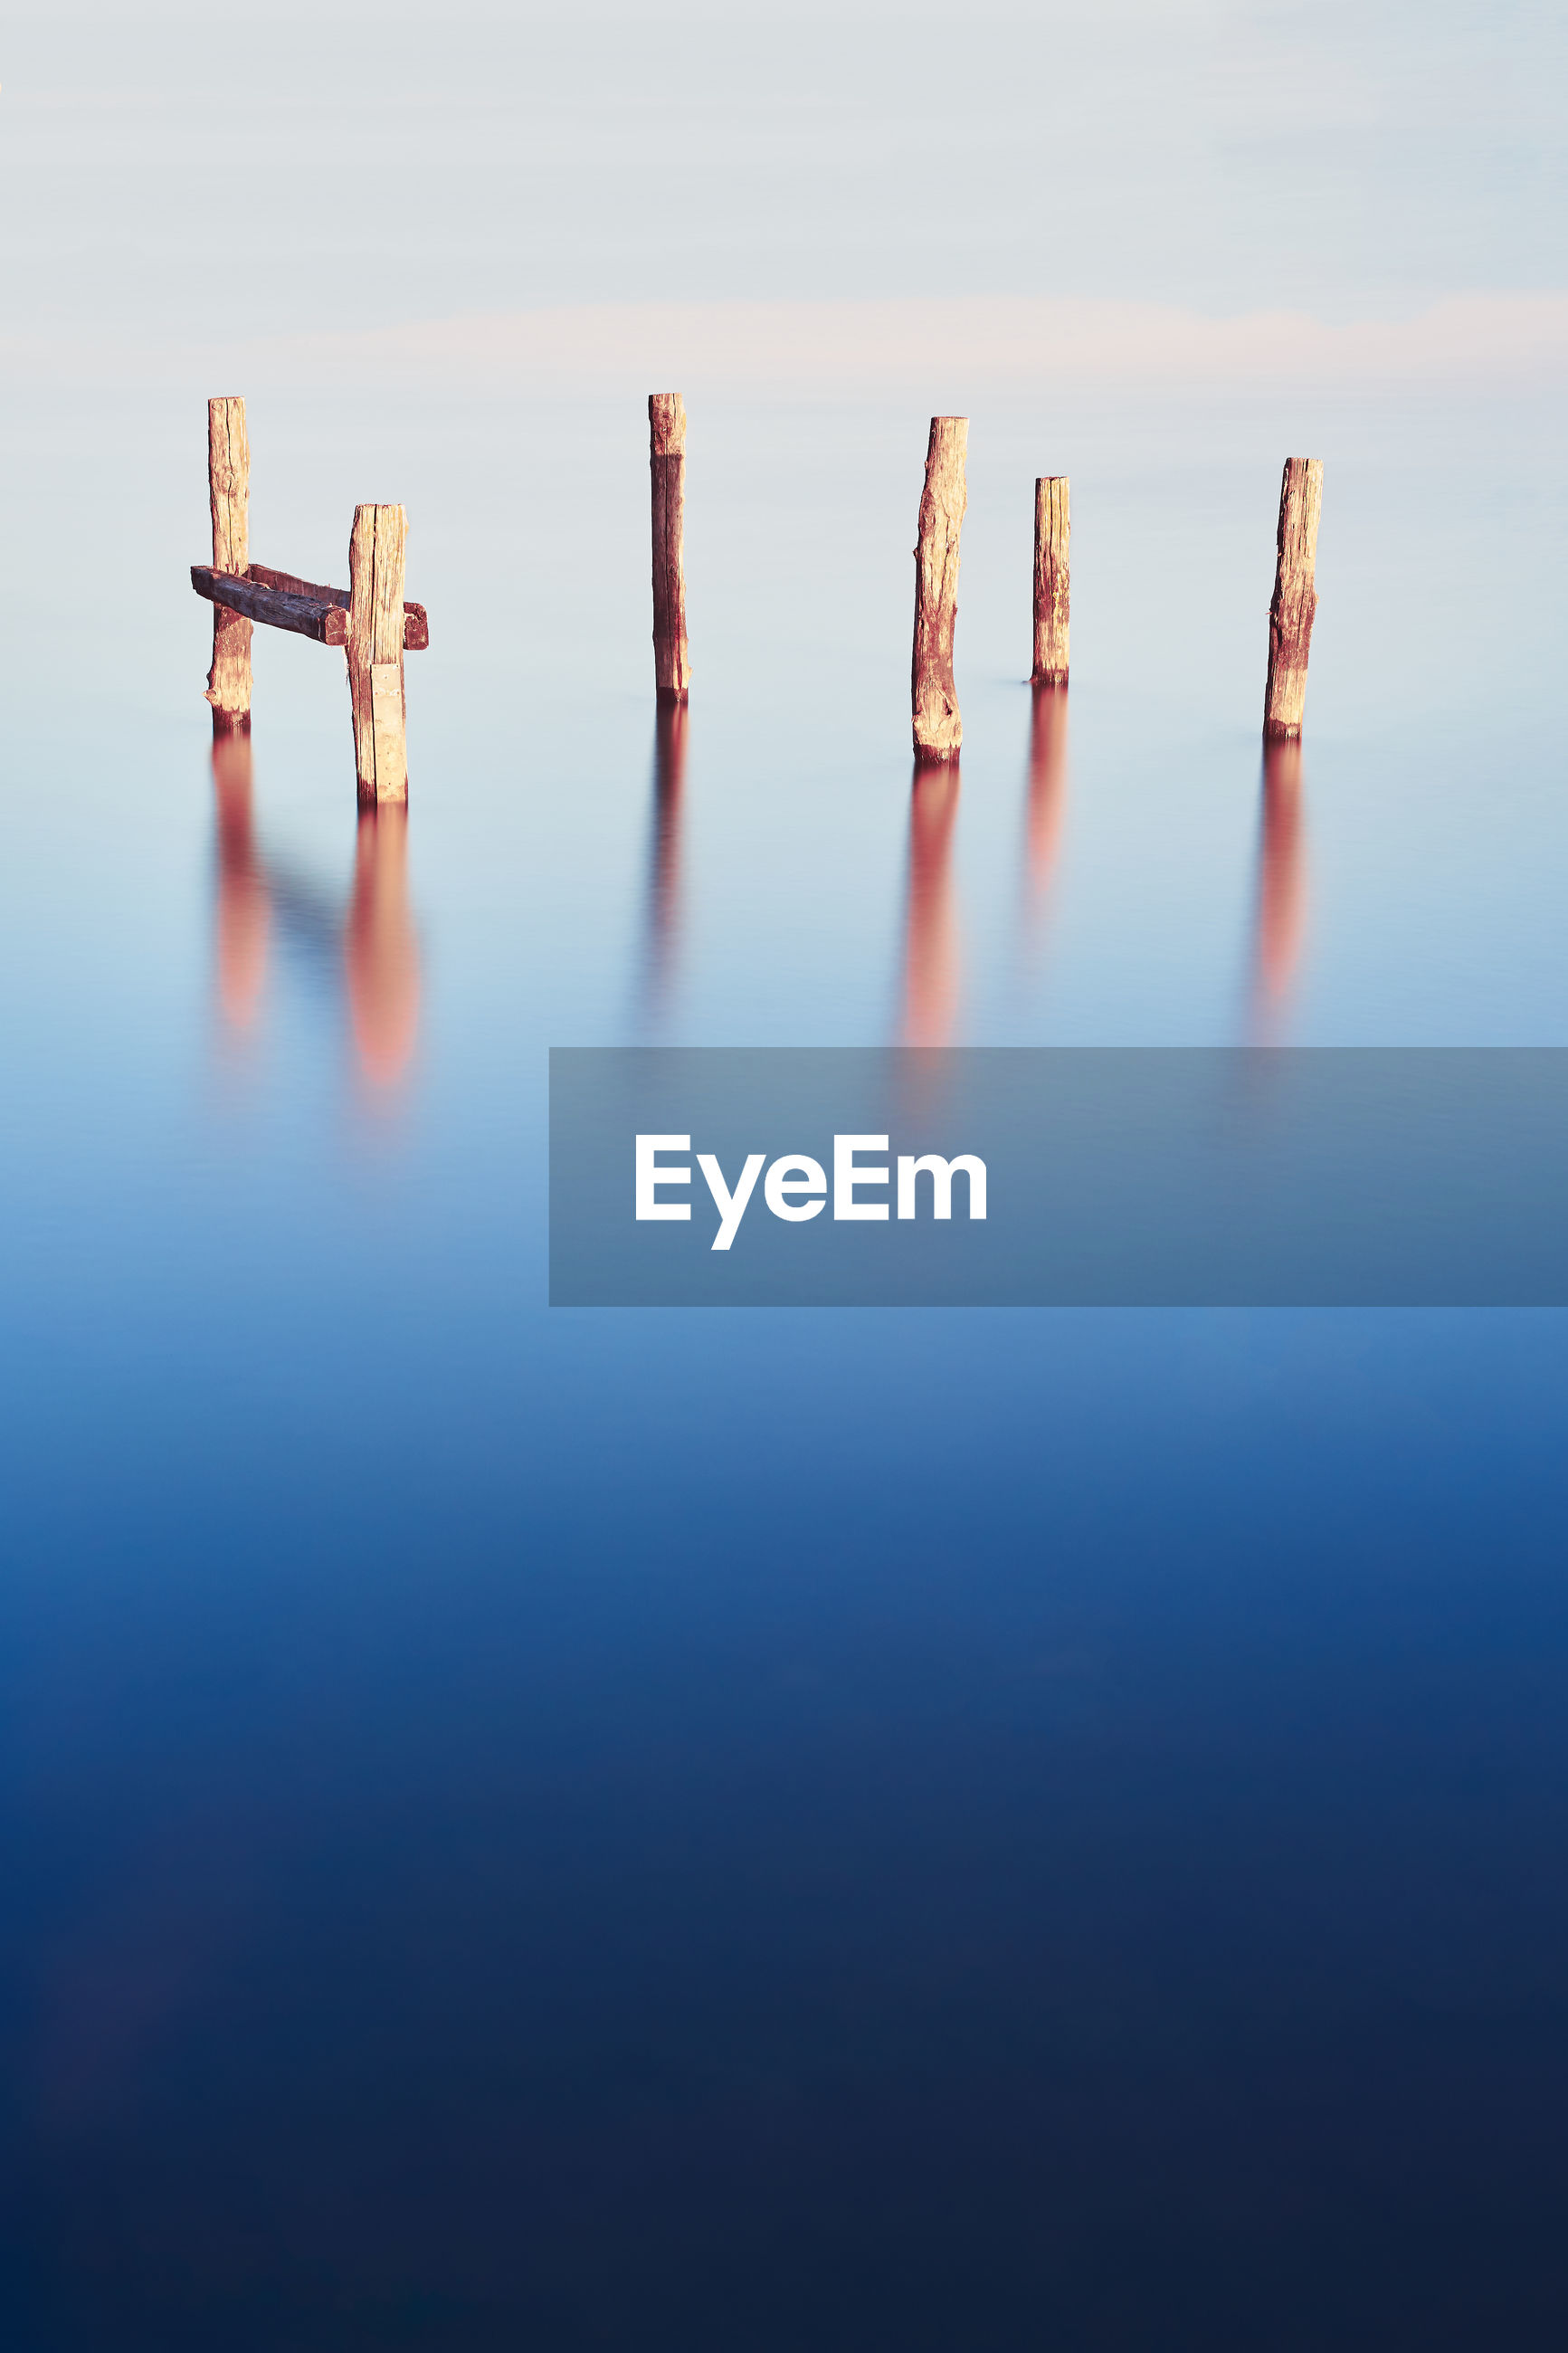 Wooden poles in the water with long exposure